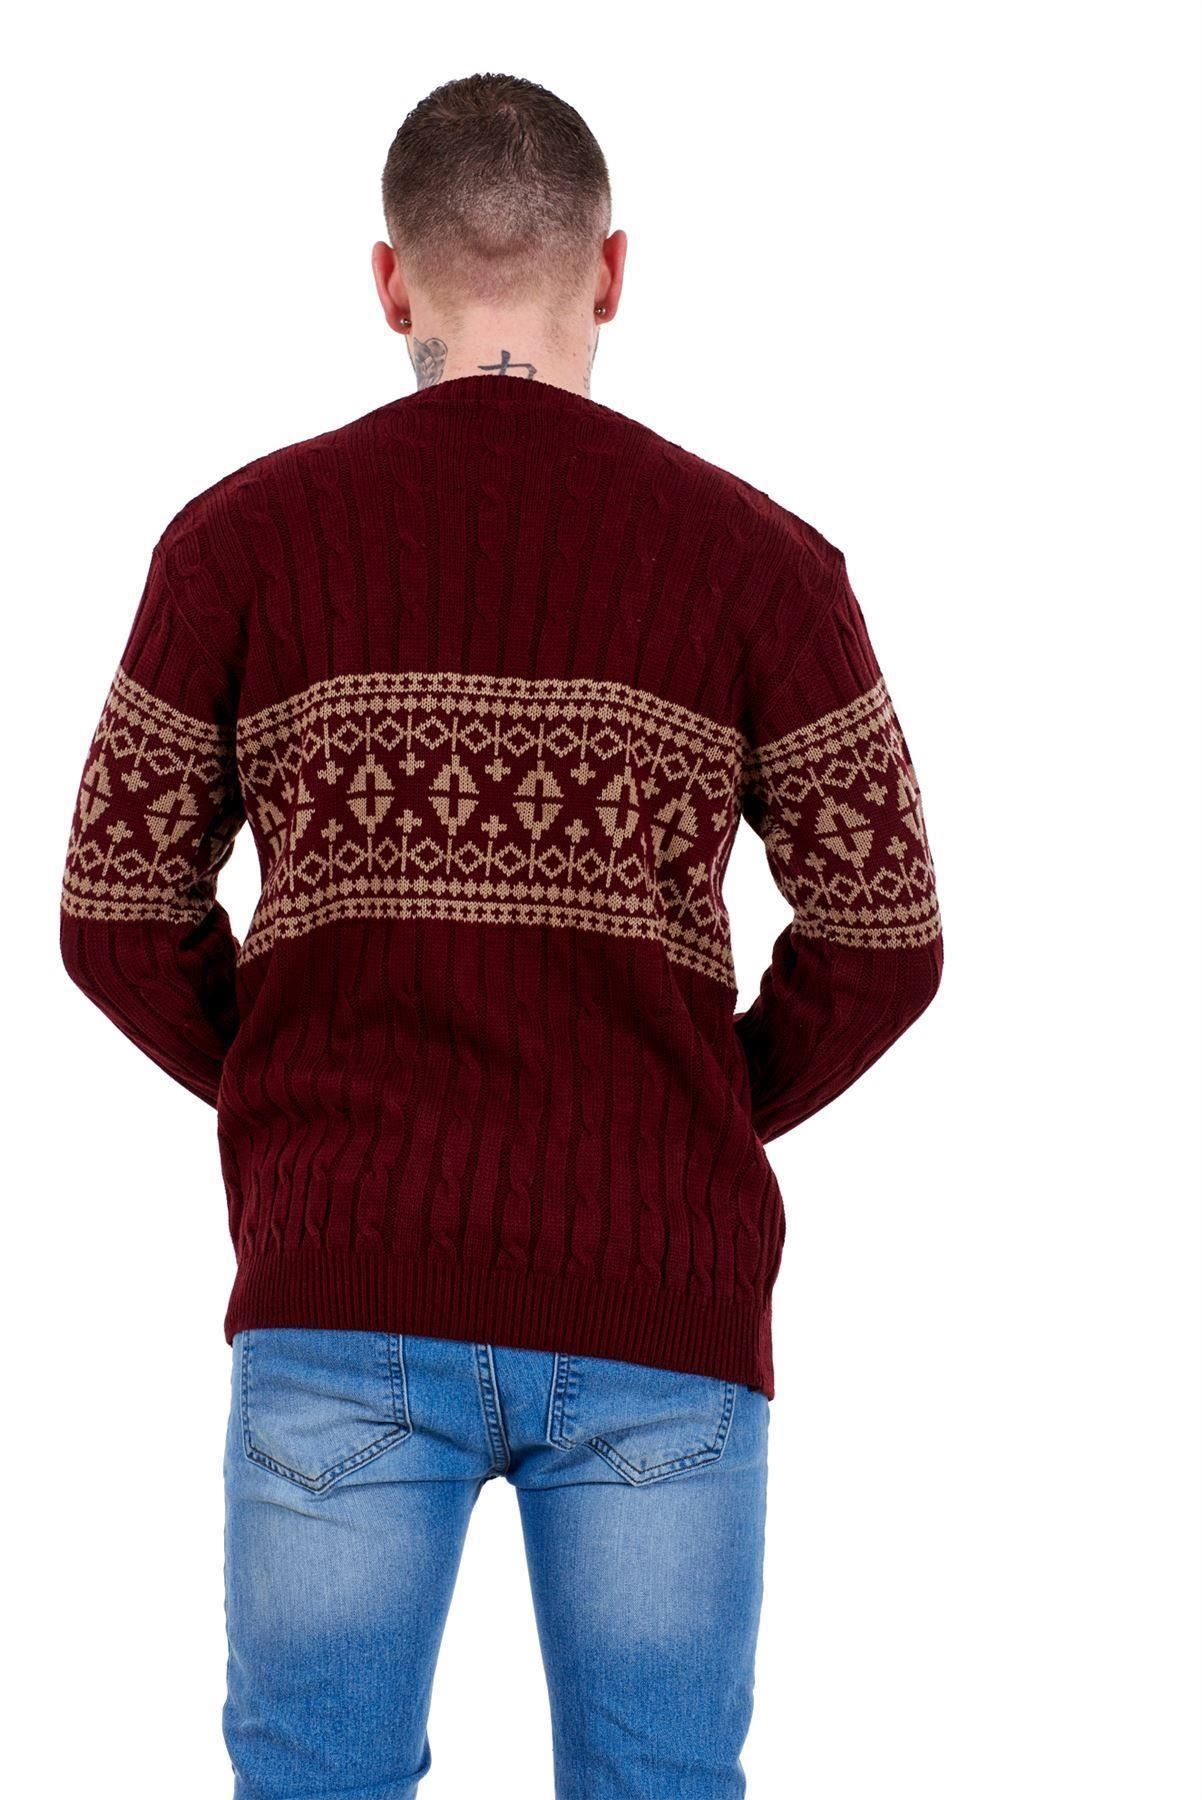 Mens-New-Cable-Knit-Jacquard-Long-Sleeve-Pullover-Jumper-Sweater-S-to-XL thumbnail 25